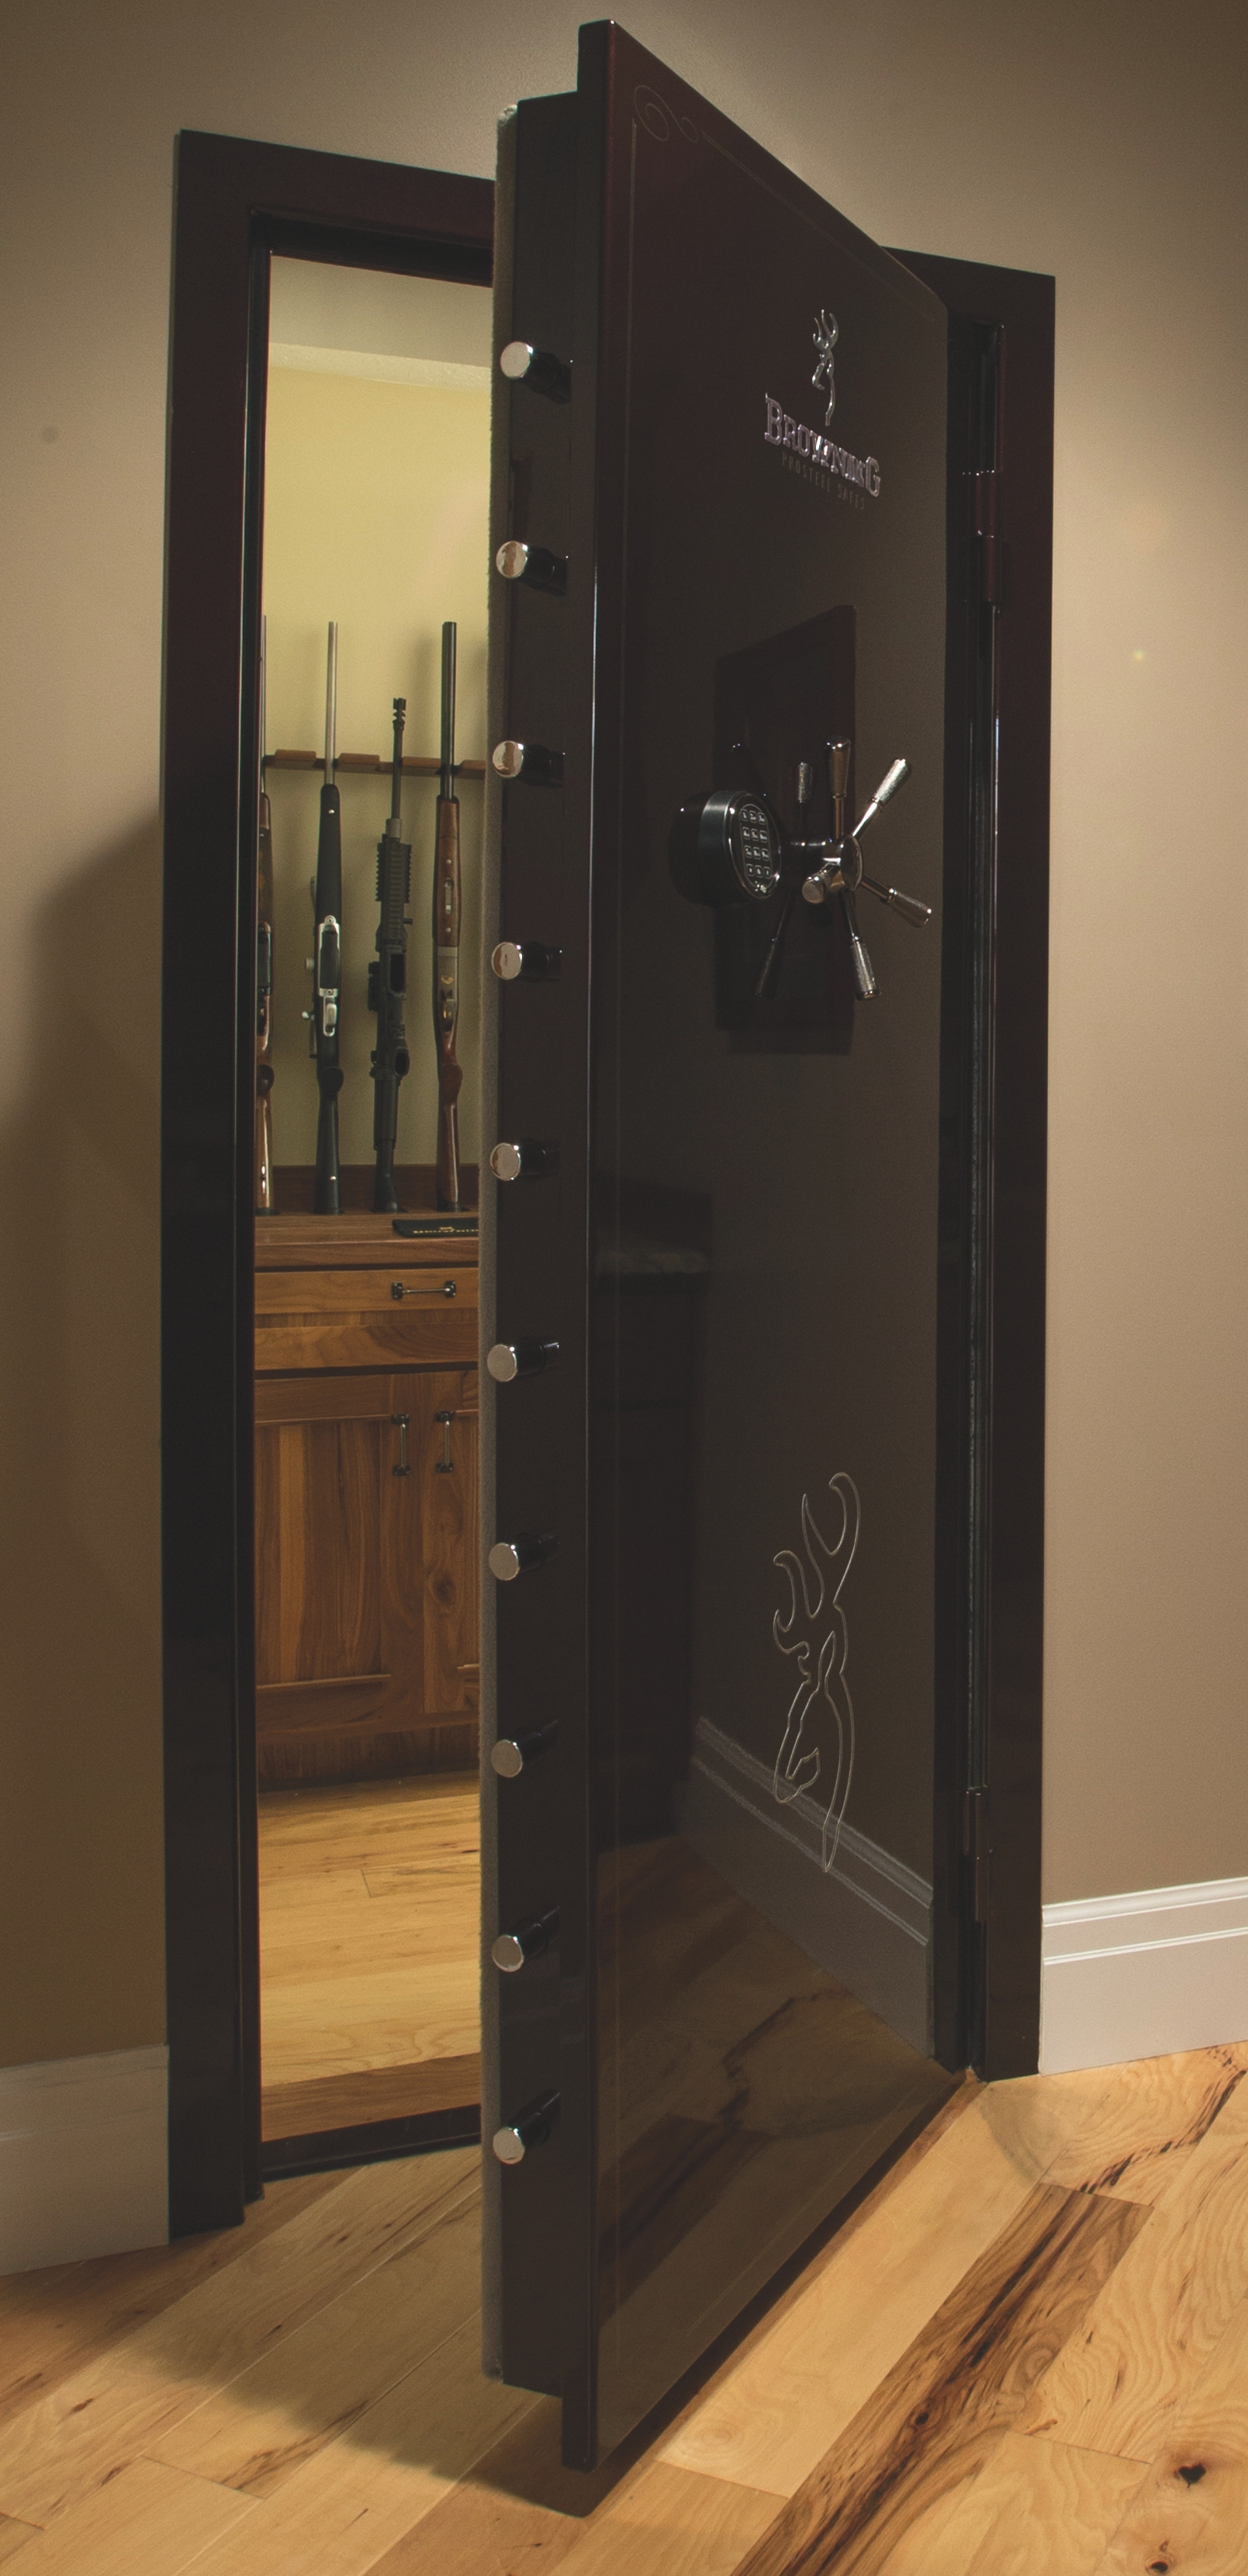 Browning universal vault door out swing 1601100075 for How to build a gun vault room